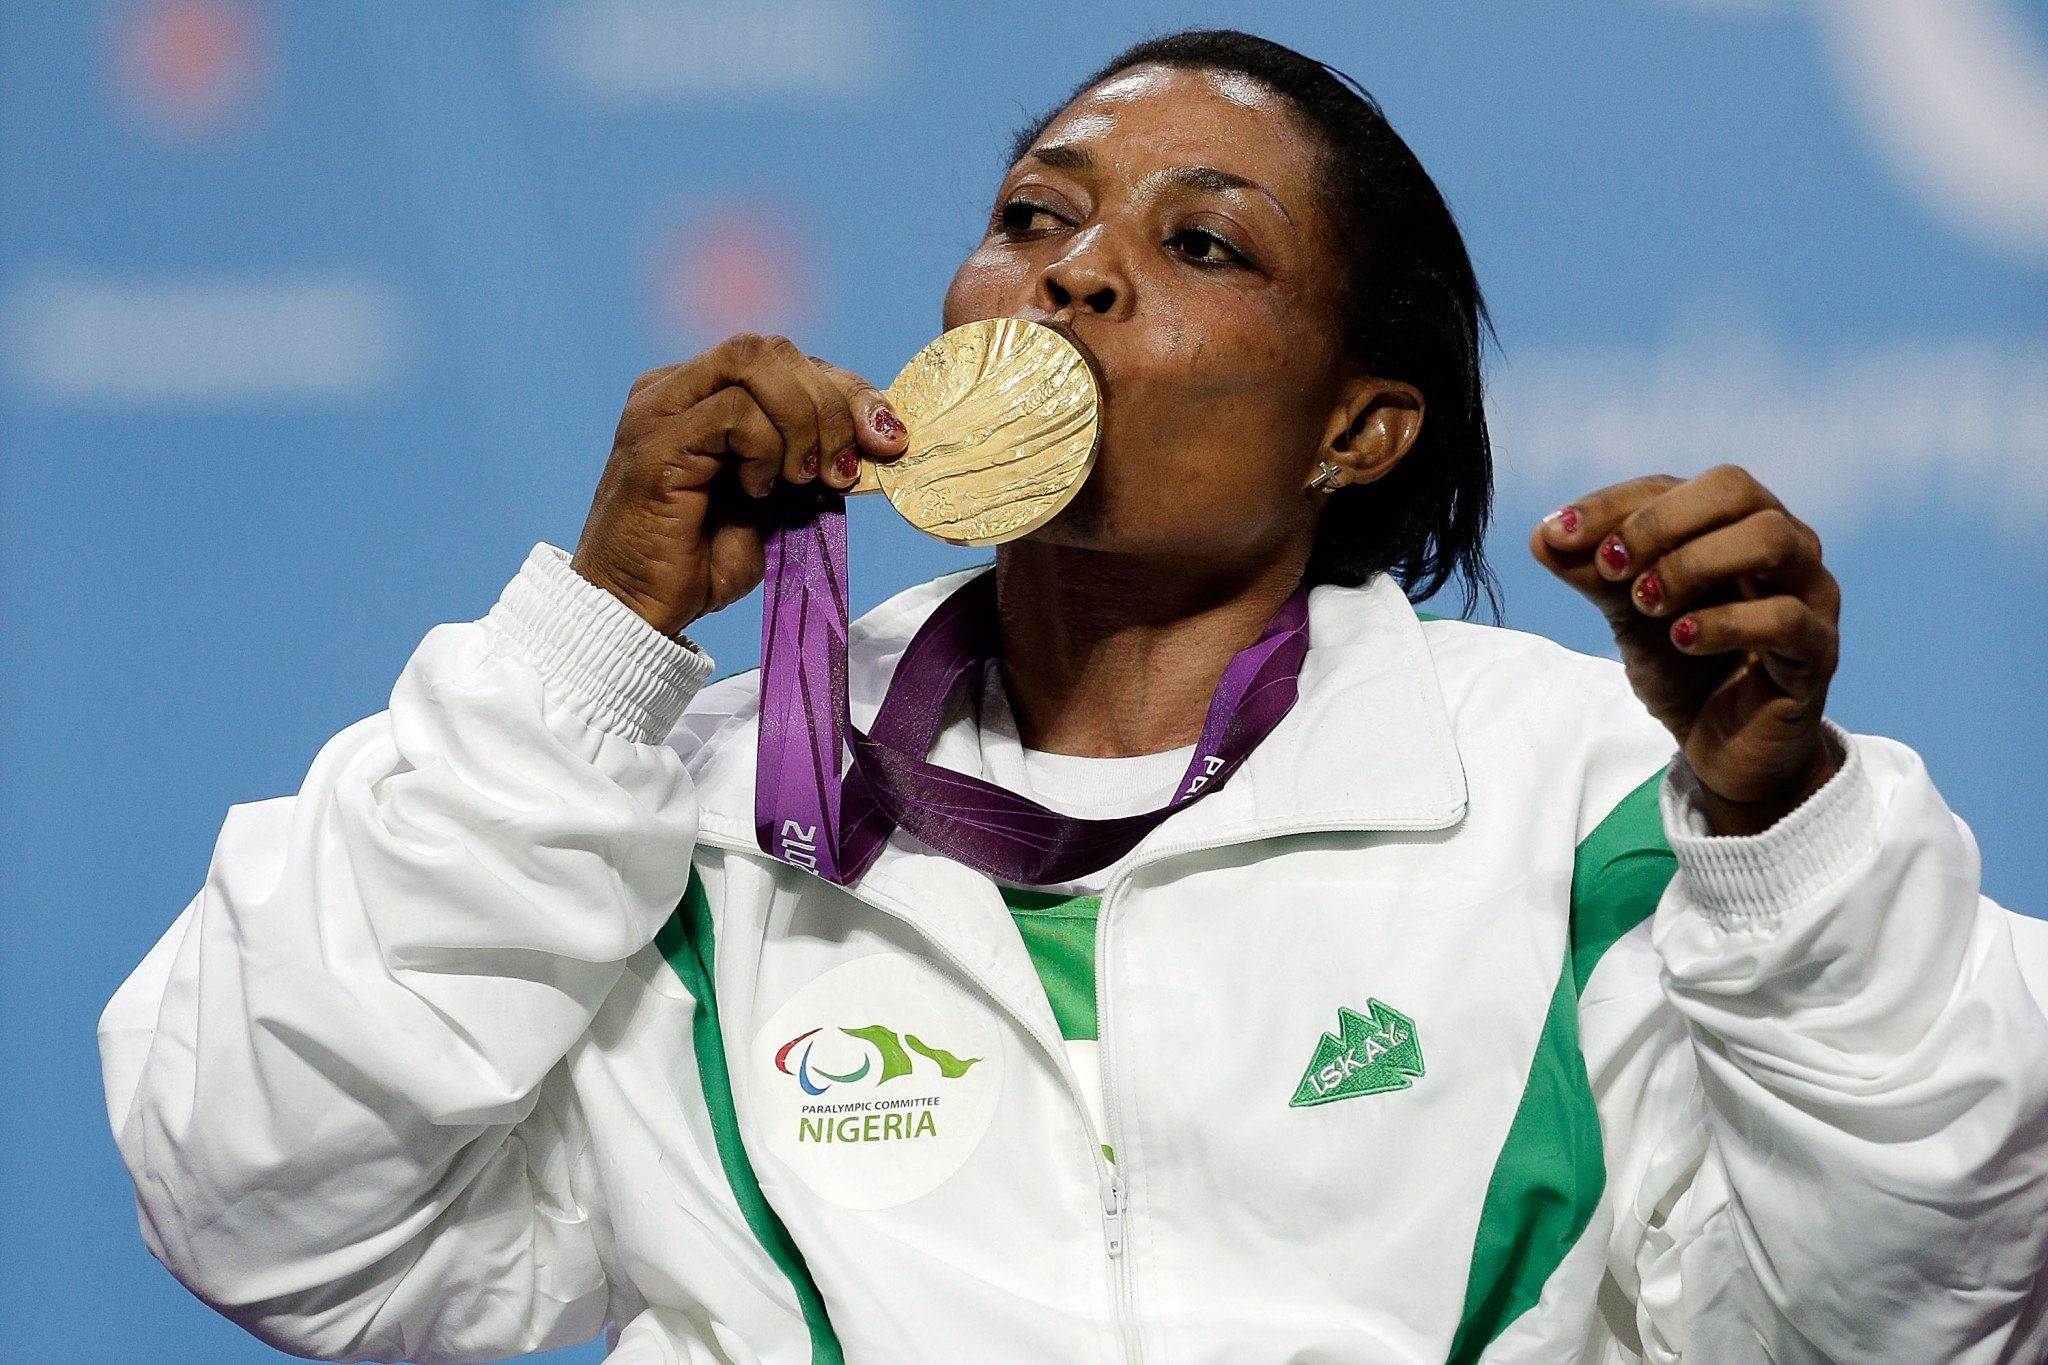 Former Paralympic and Commonwealth powerlifting champion Oyema banned for four years for anti-doping violation